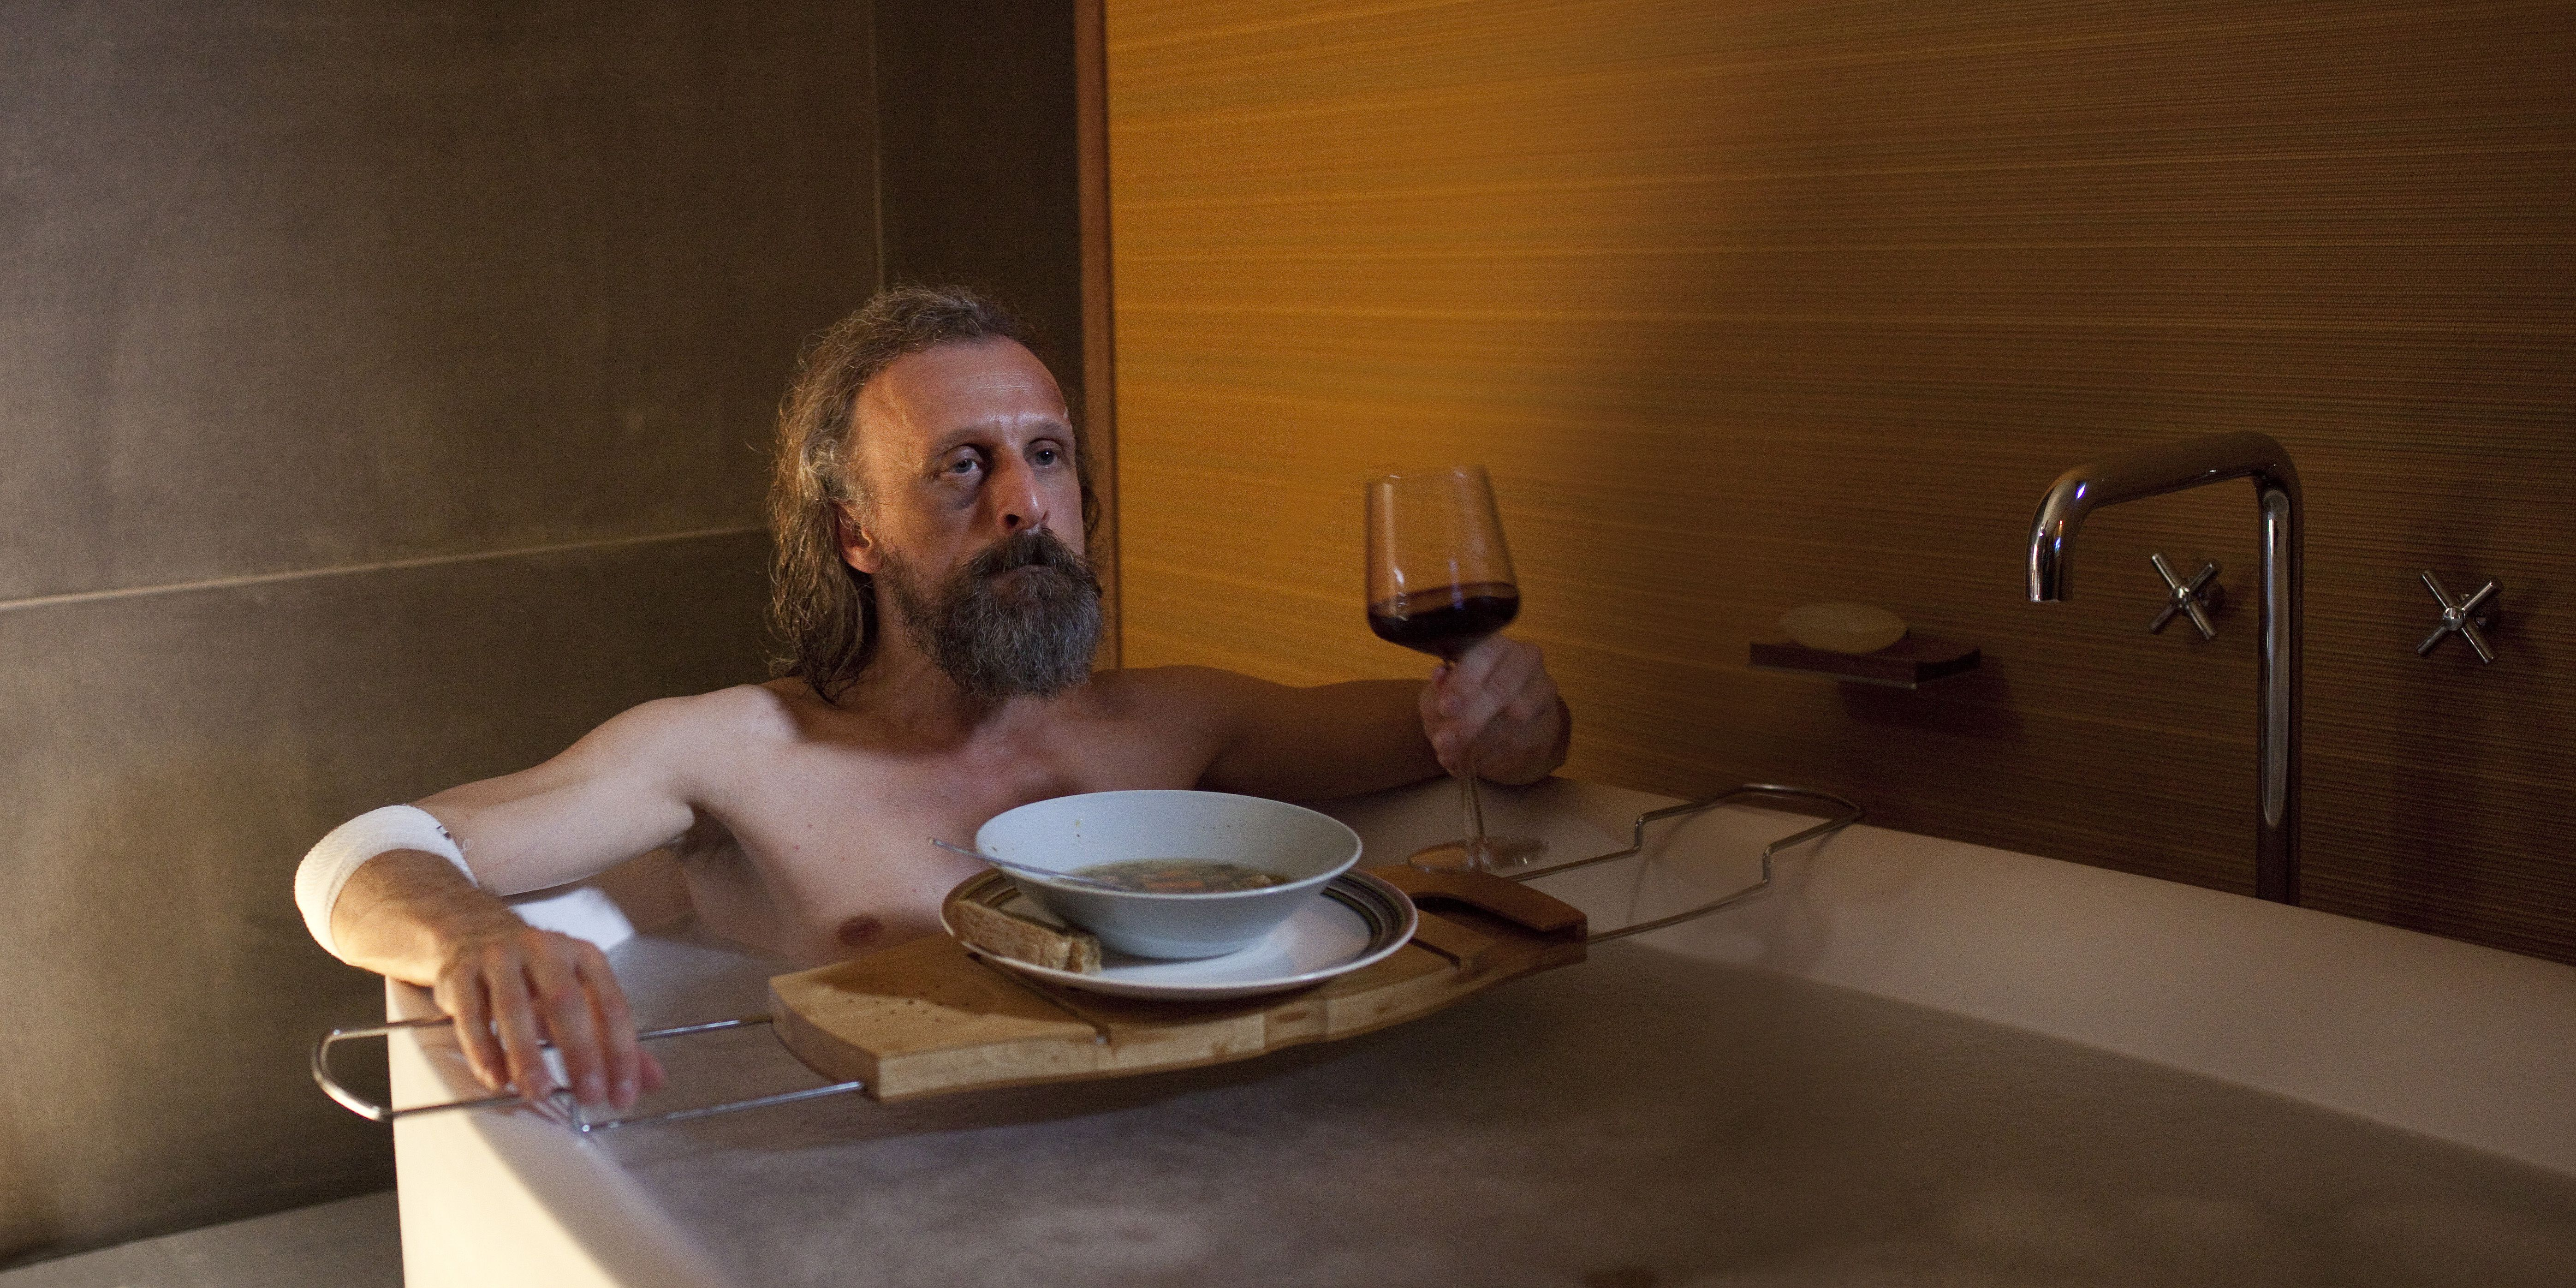 An image from Borgman